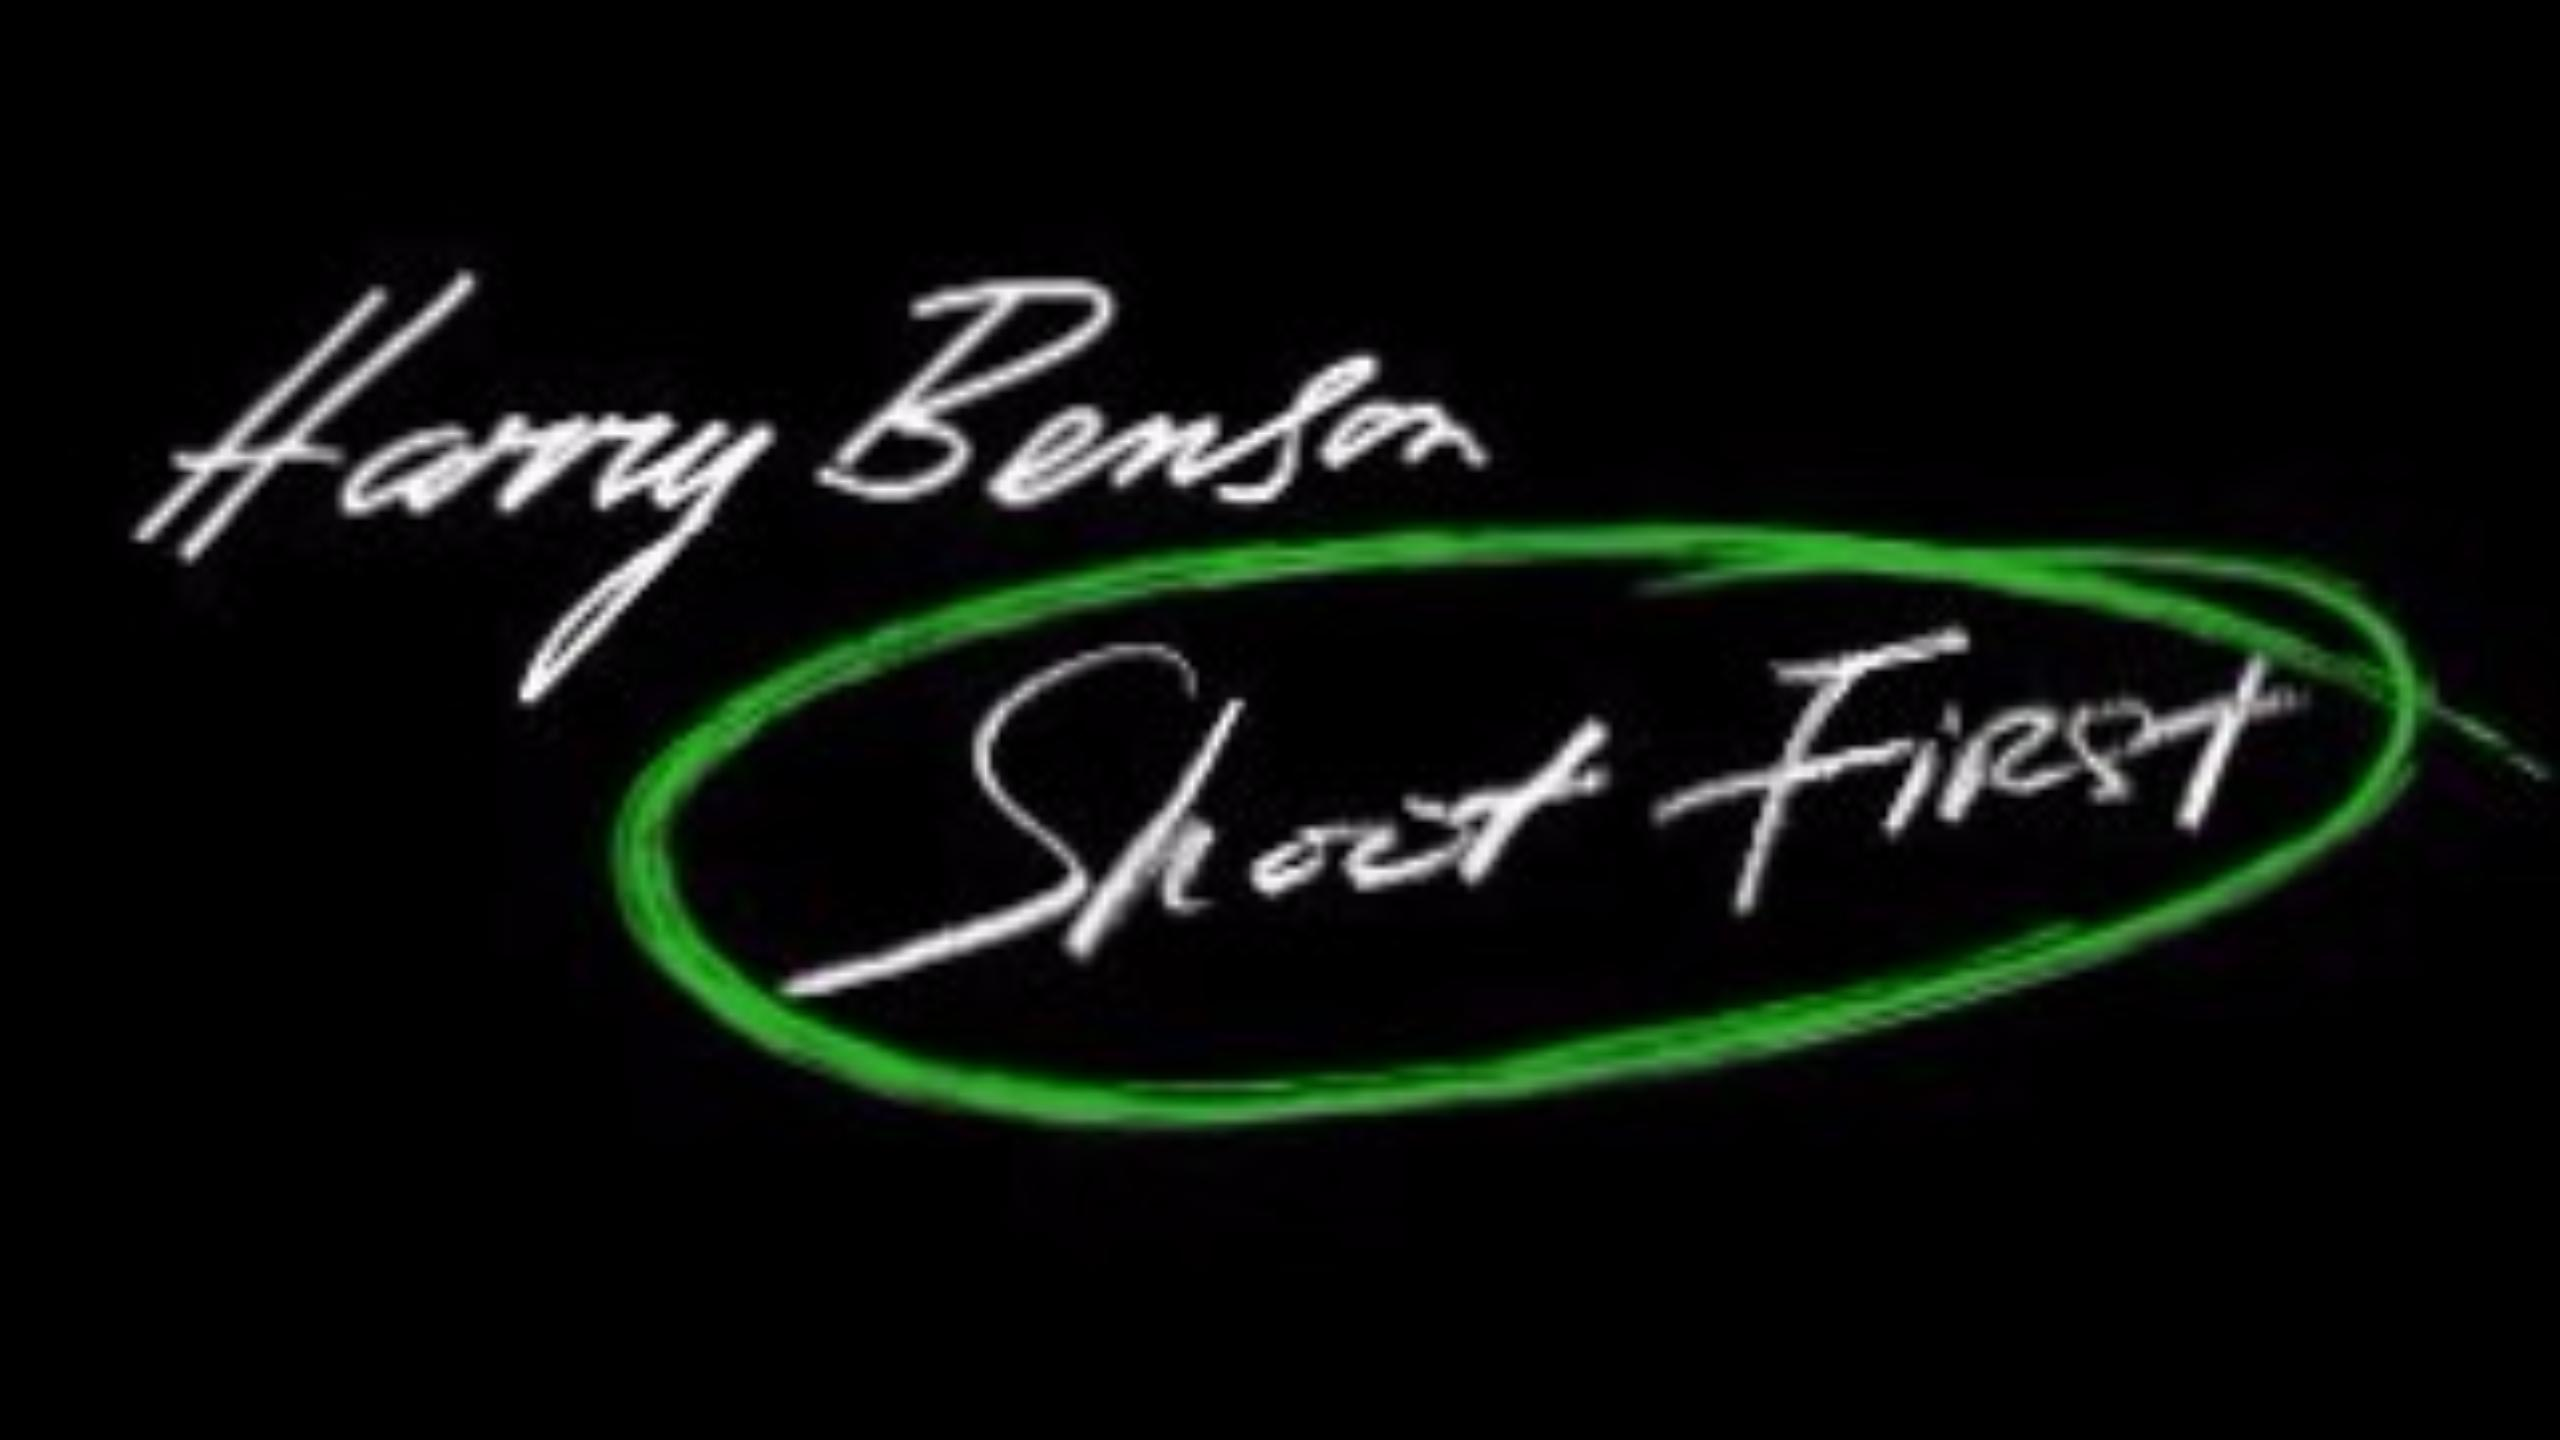 Harry Benson: Shoot First | Official Trailer